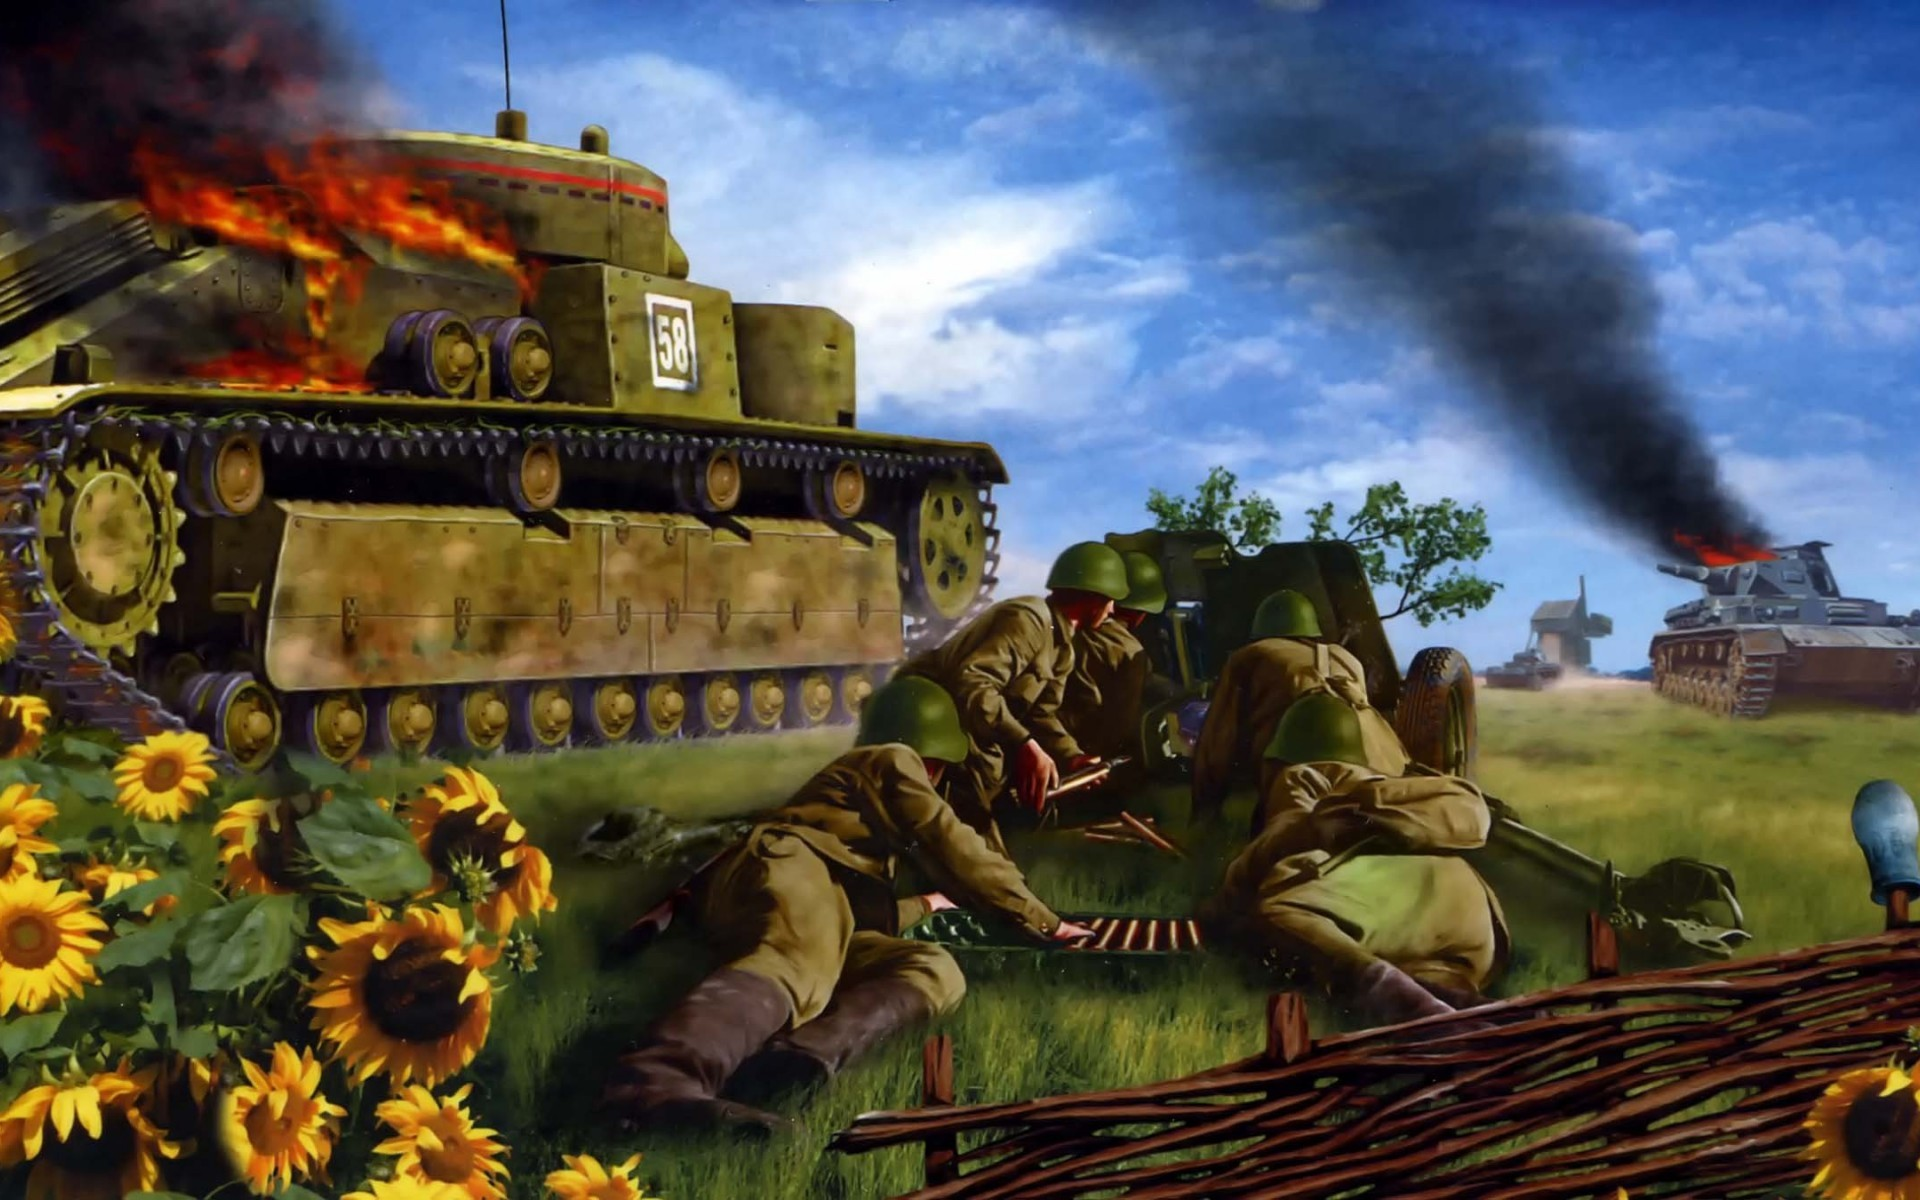 Res: 1920x1200, Battle for Kiev1942 T-35 art paintings military weaons warrior soldiers tanks  ww2 wwll wallpaper |  | 35326 | WallpaperUP